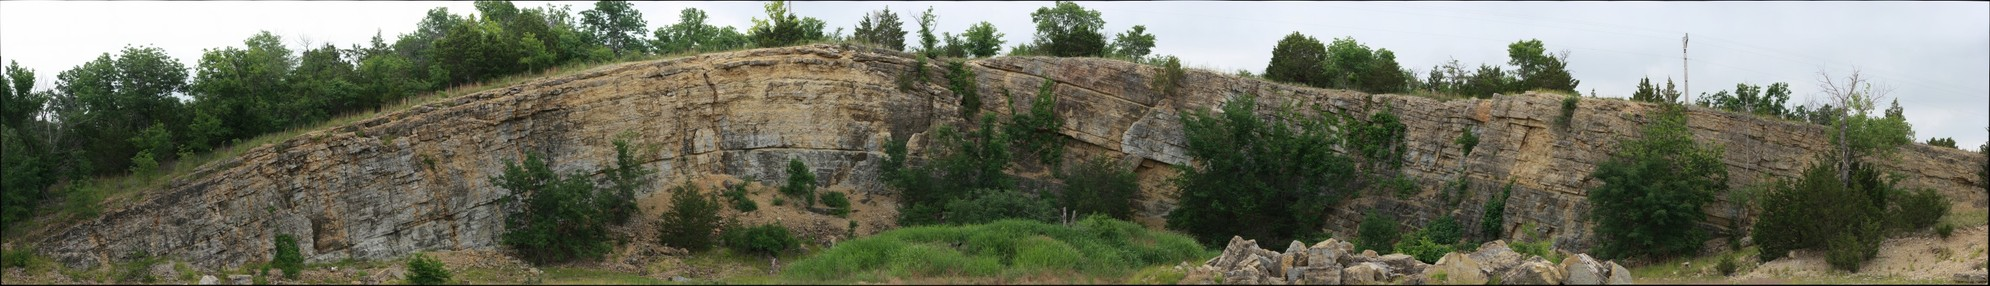 S&T_Anticline at Woodford Formation